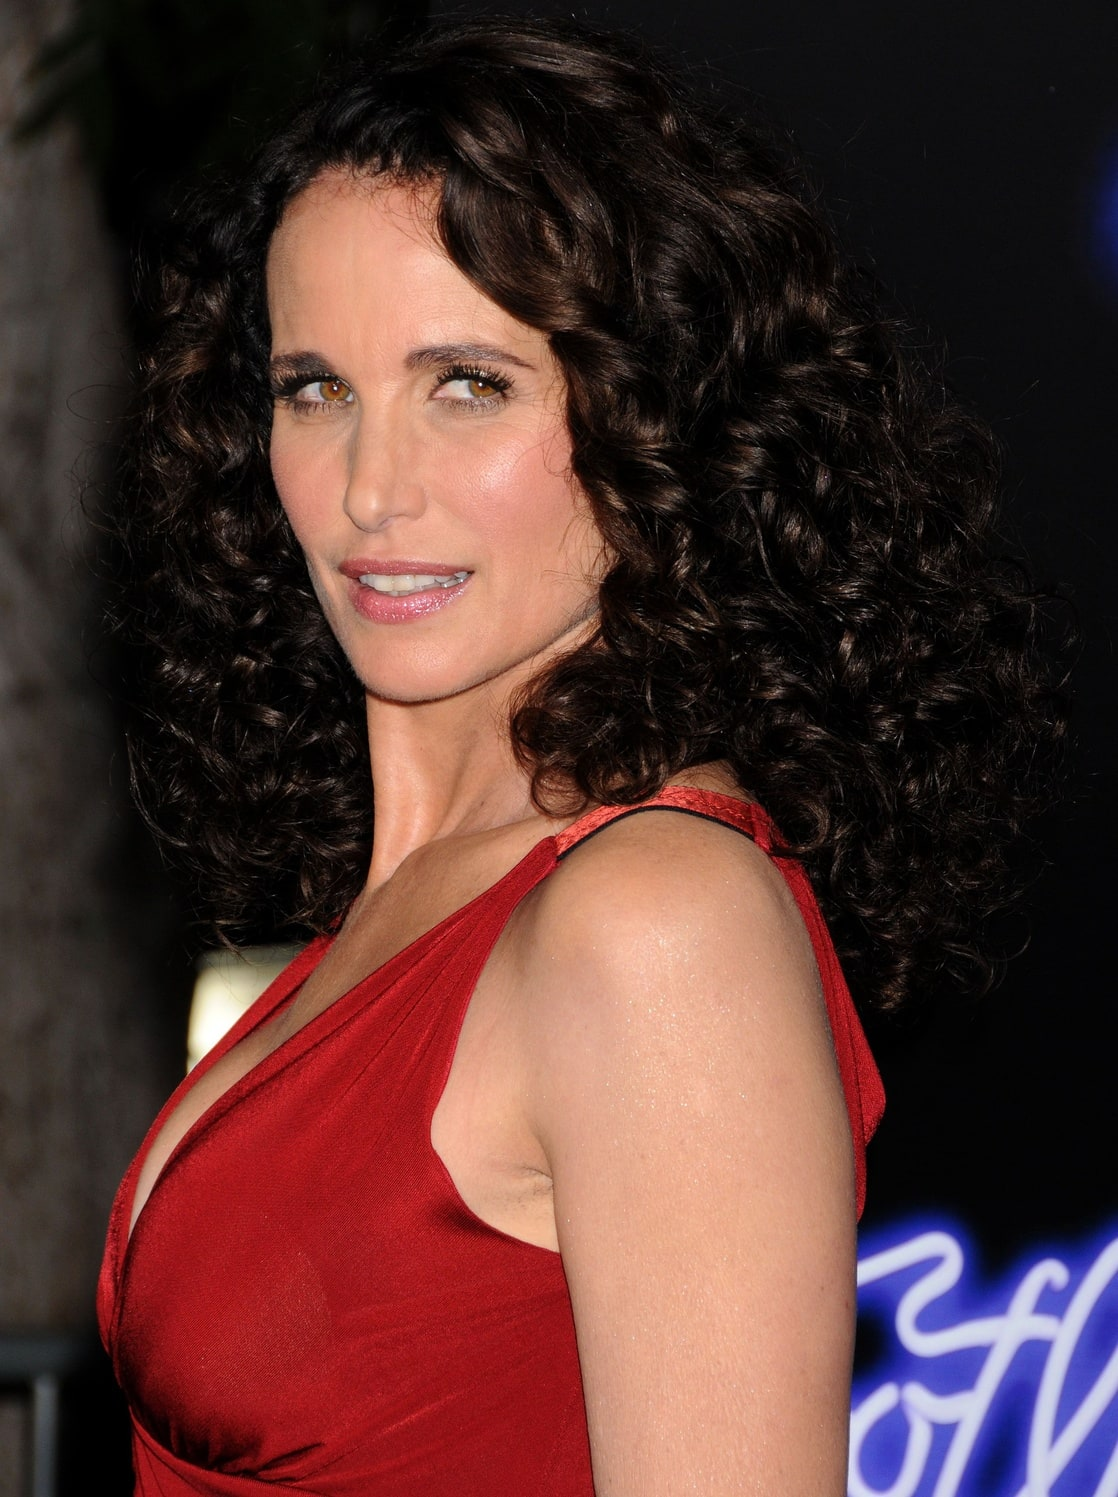 Picture Of Andie Macdowell